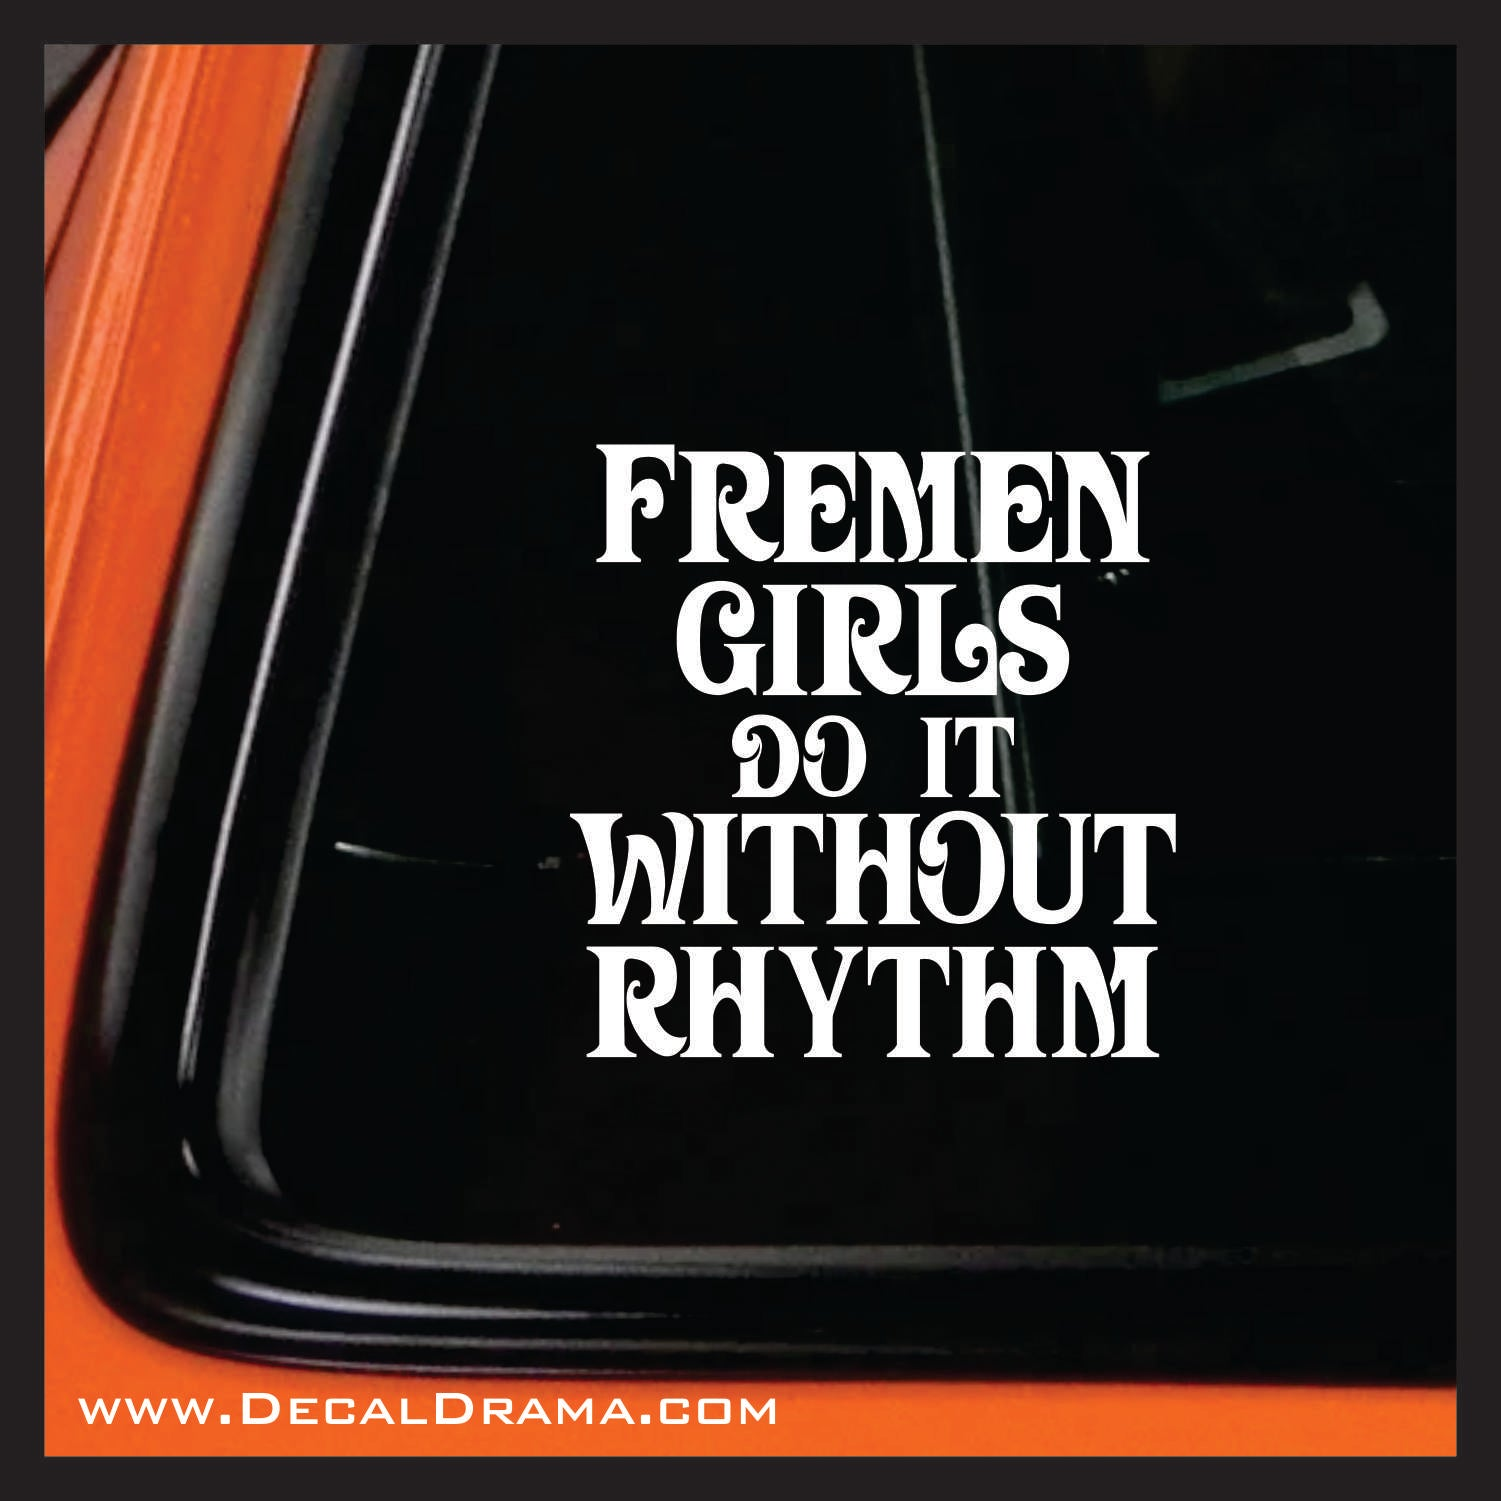 Fremen Girls Do It Without Rhythm, Frank Herbert's Dune Fan Art Vinyl Decal